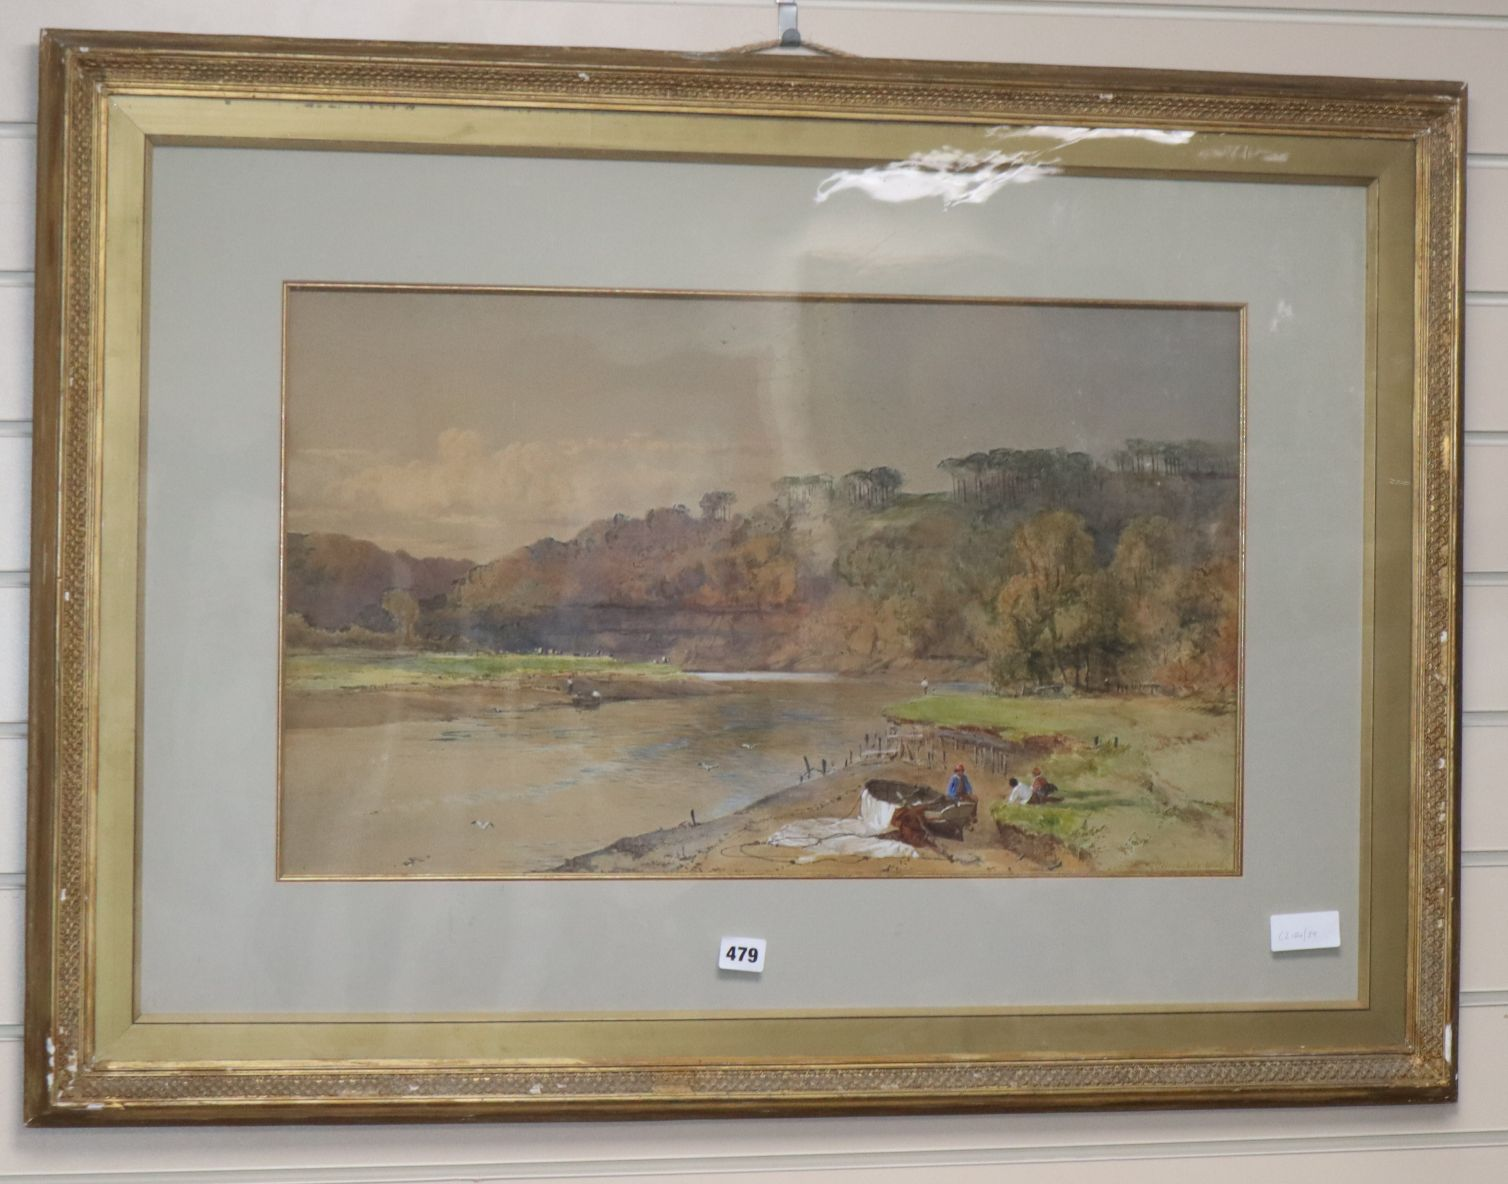 Lot 479 - Charles Branwhite, watercolour, Fishermen in a river landscape, signed and dated 1868, 39 x 66cm